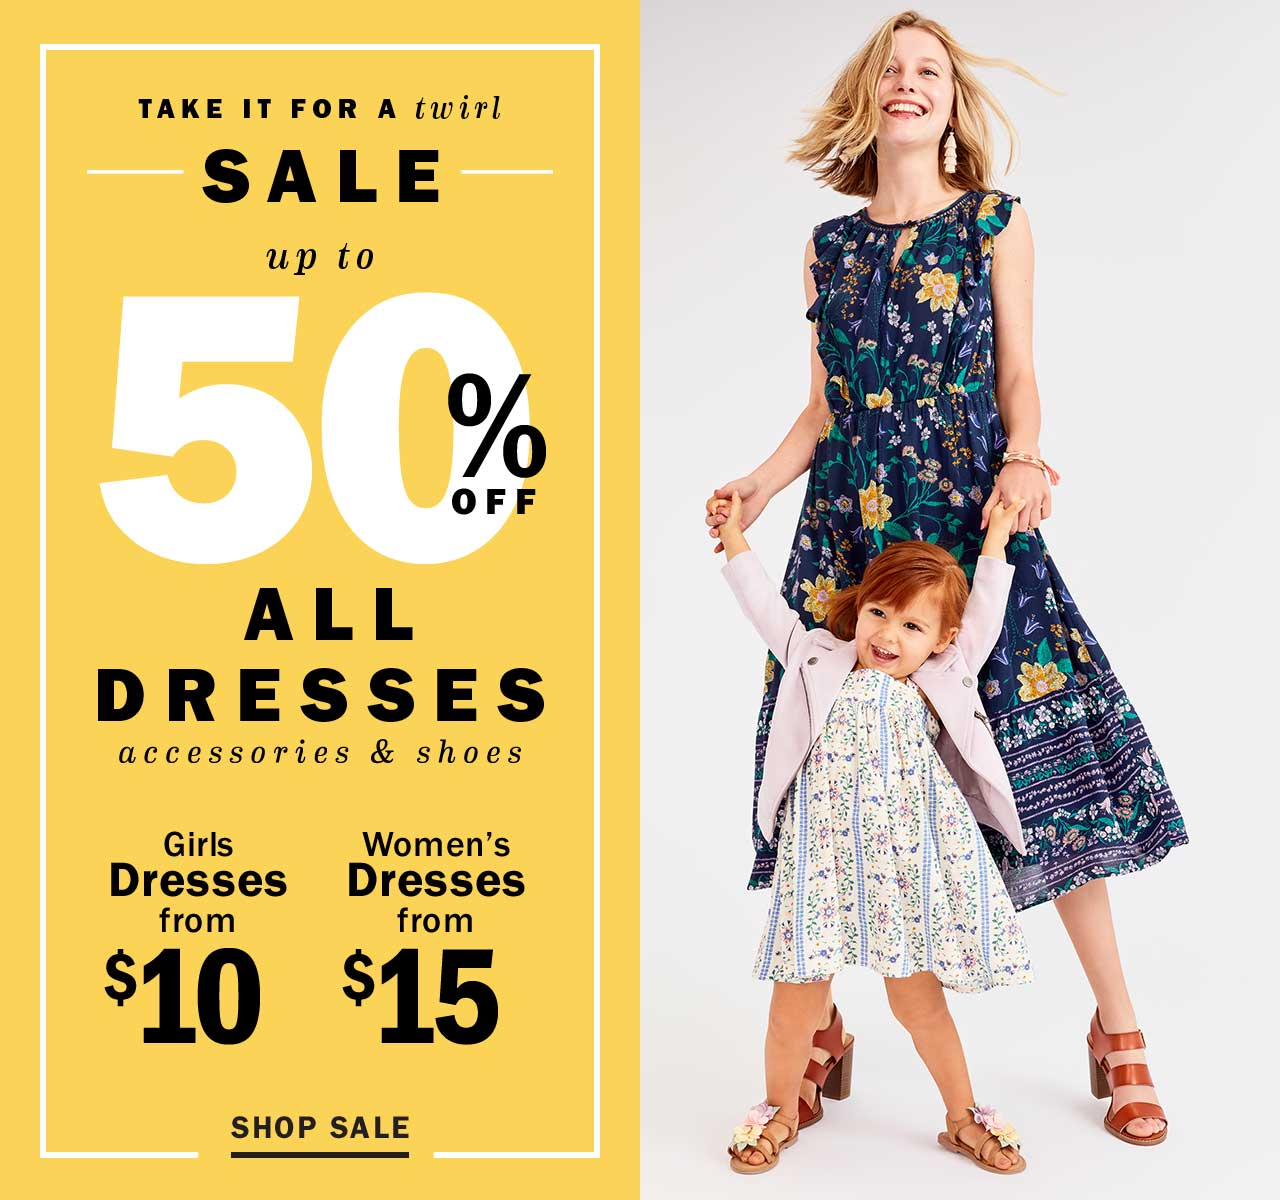 up to 50% OFF ALL DRESSES accessories & shoes